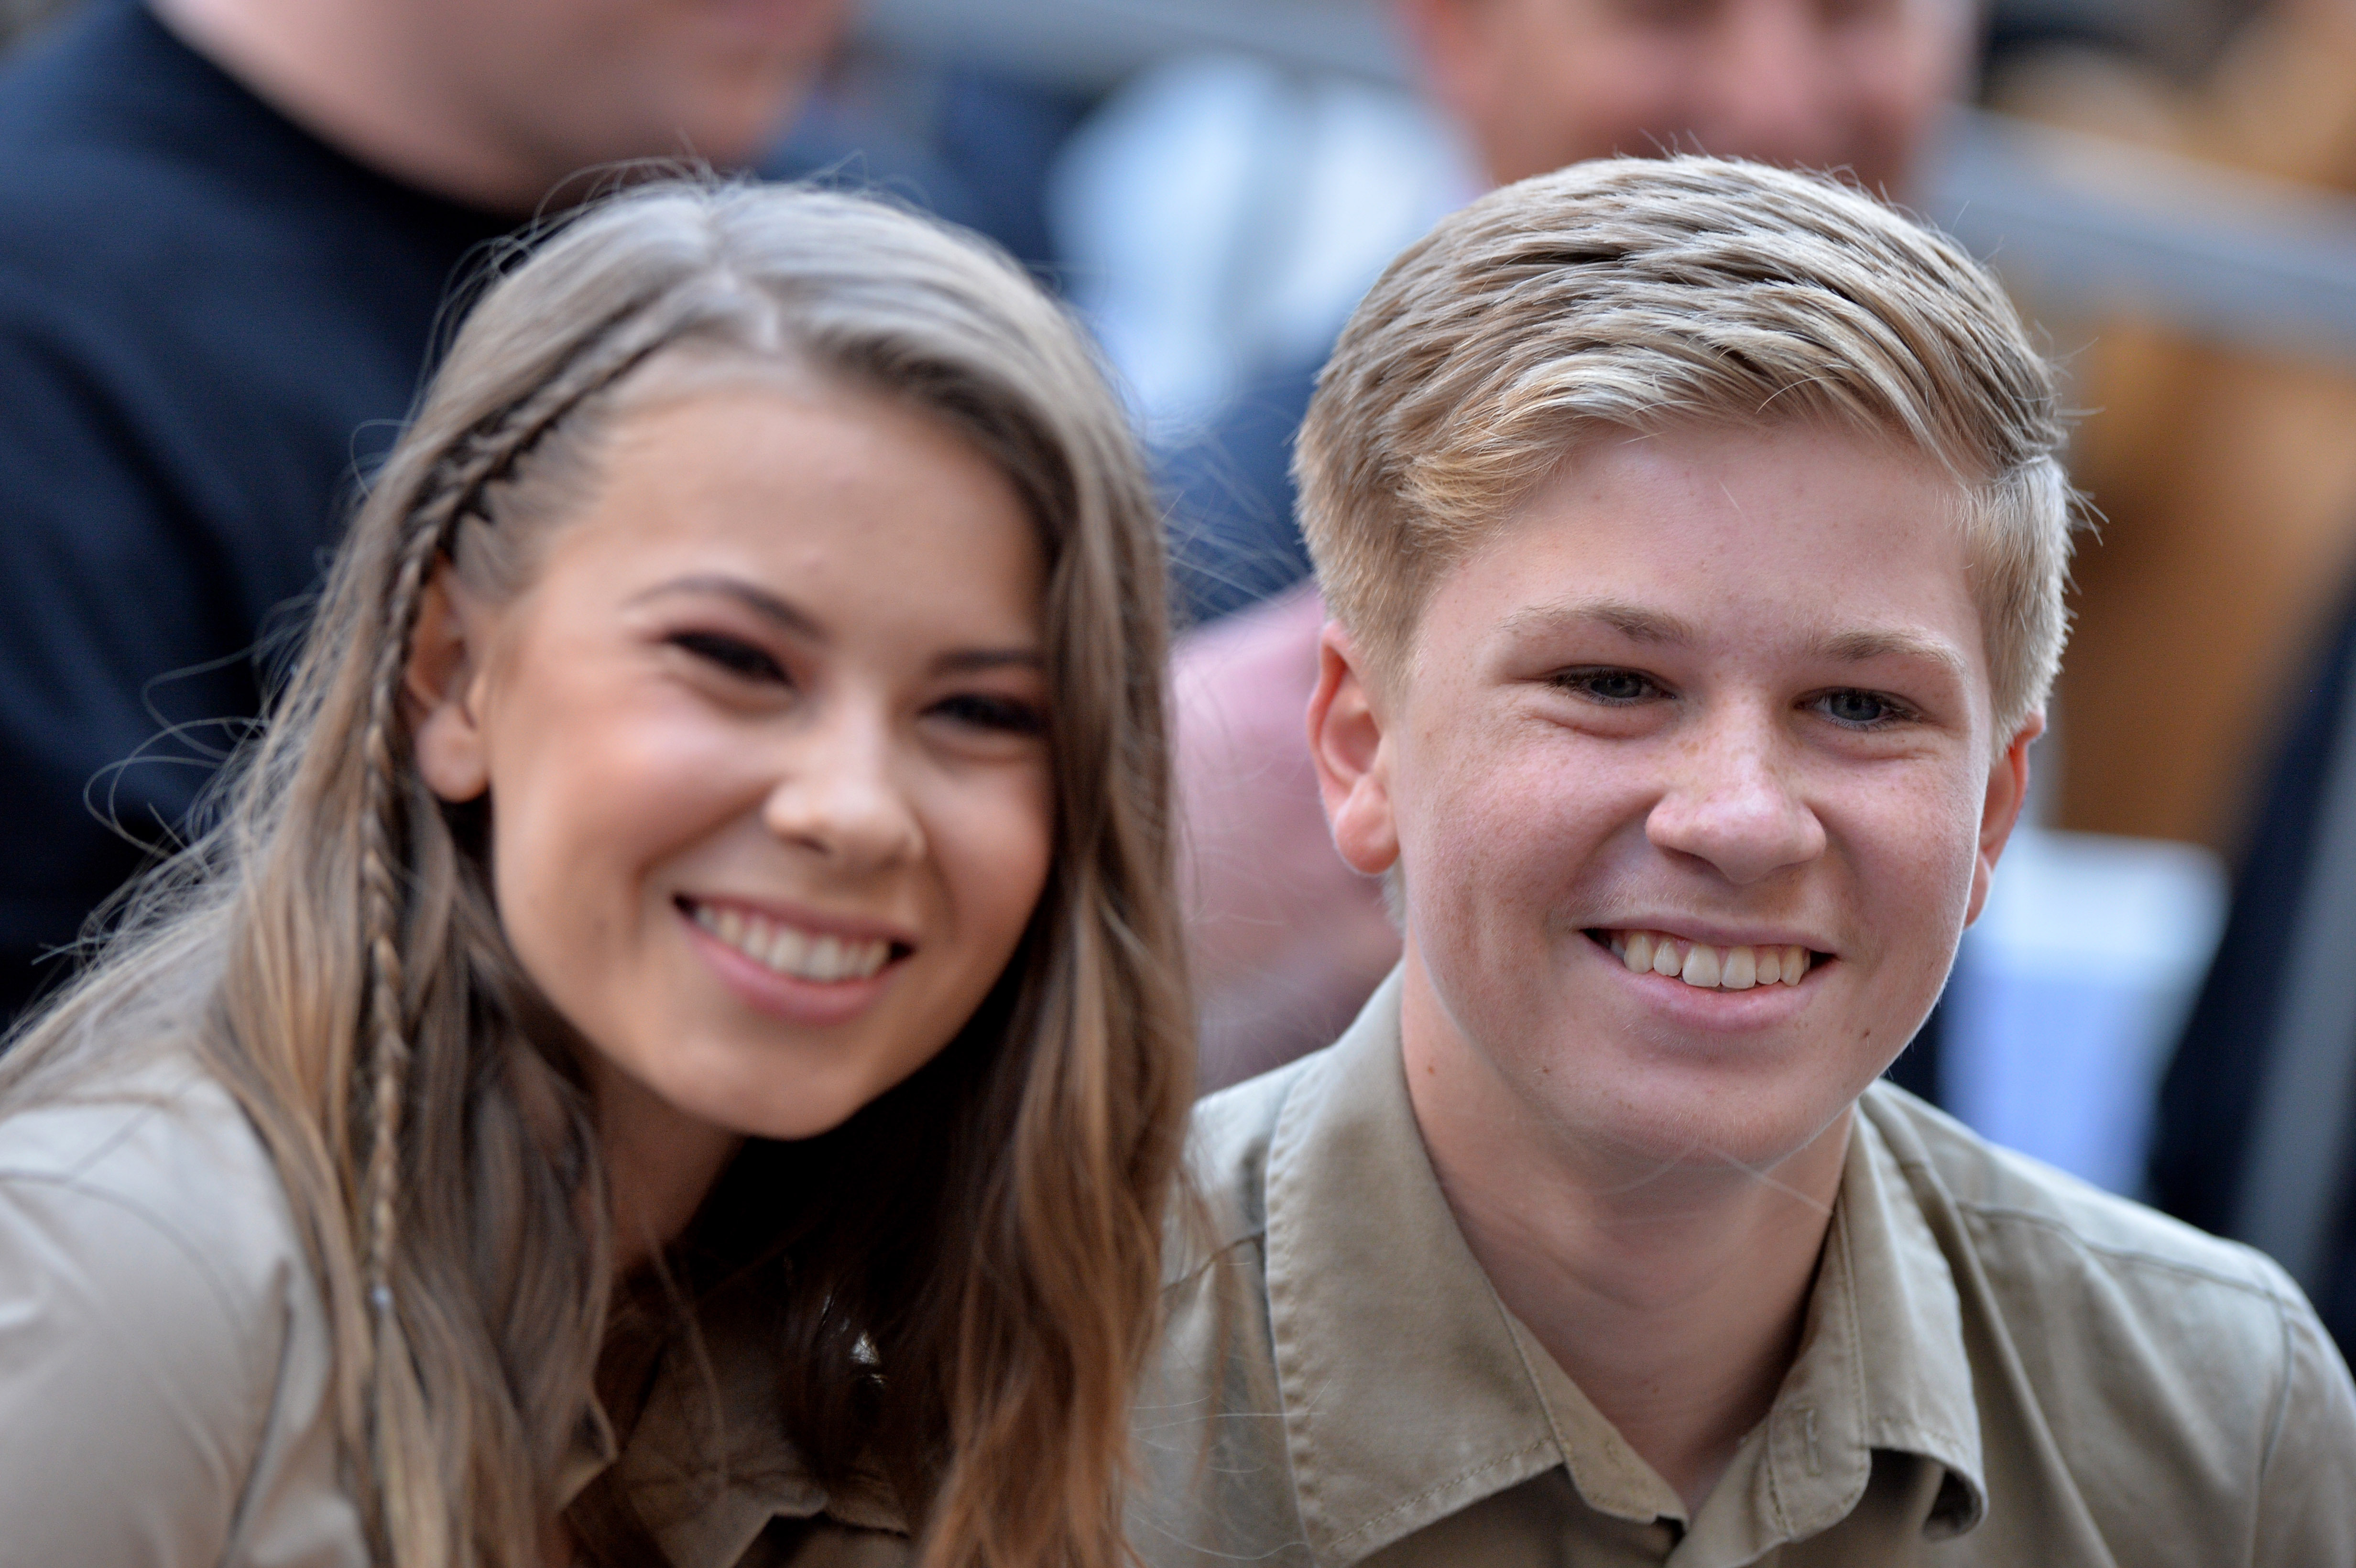 Steve's children, Bindi and Robert Irwin. Credit: PA